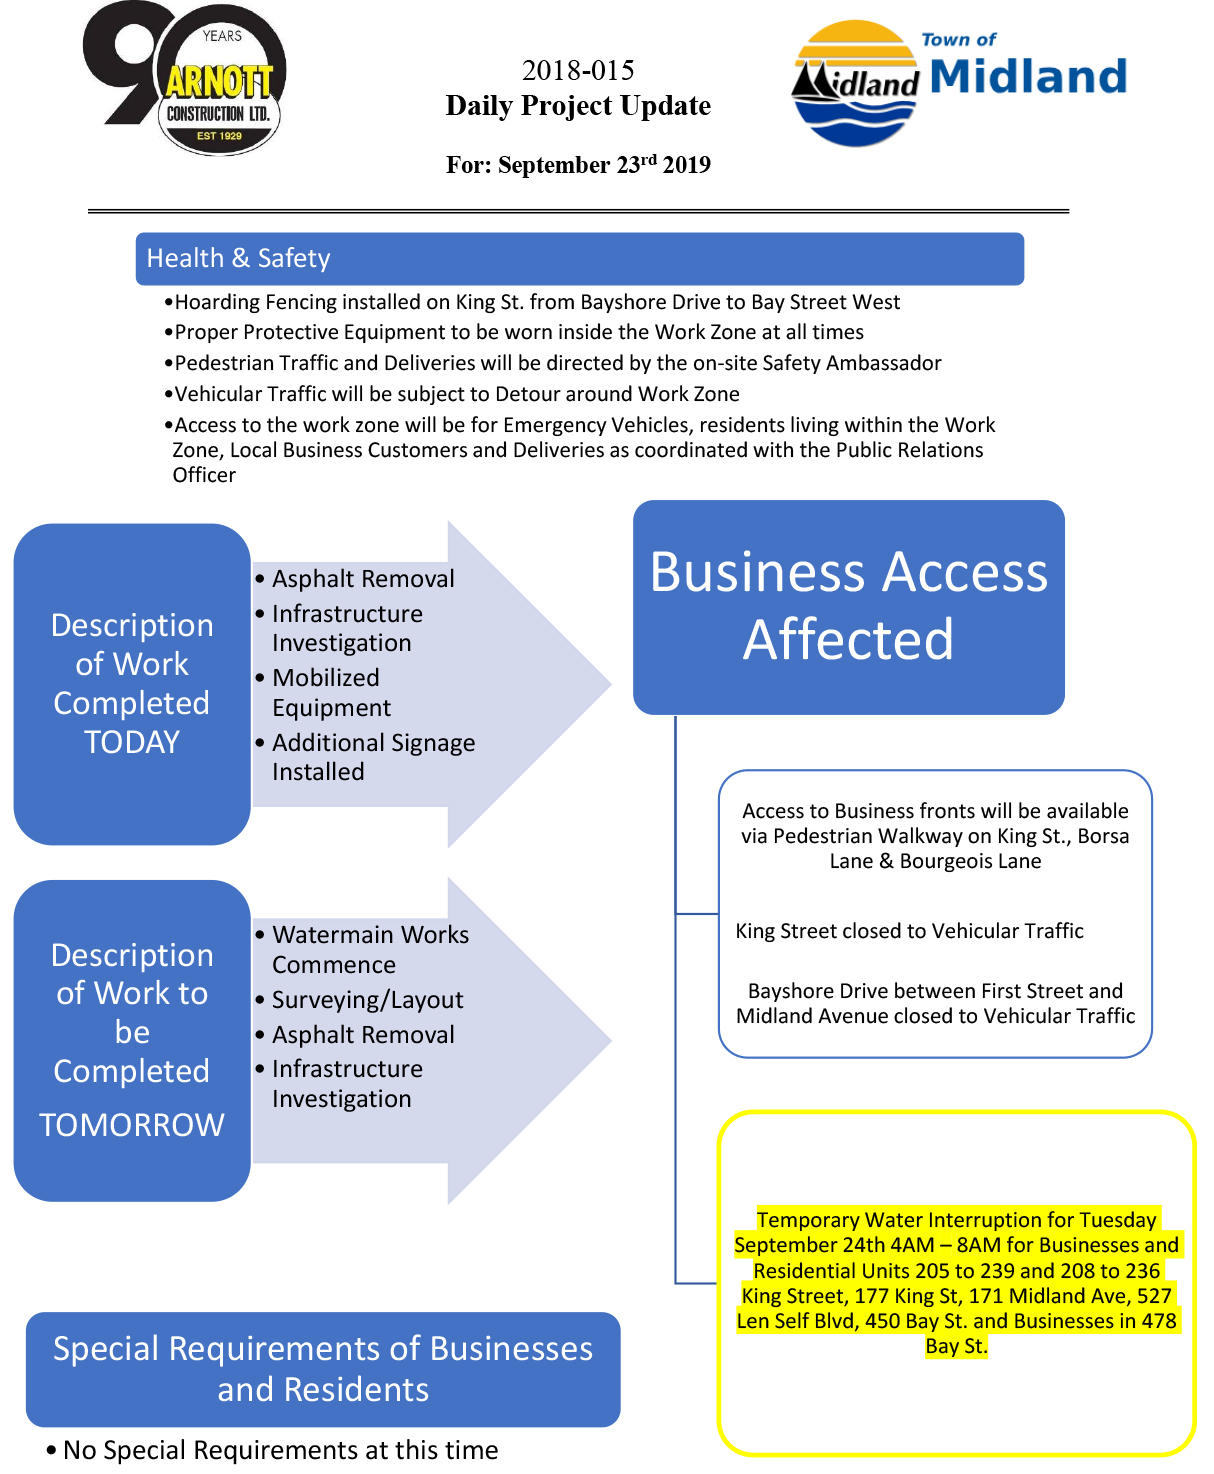 Business disruption and mitigation plan 2018 015   september 23 2019